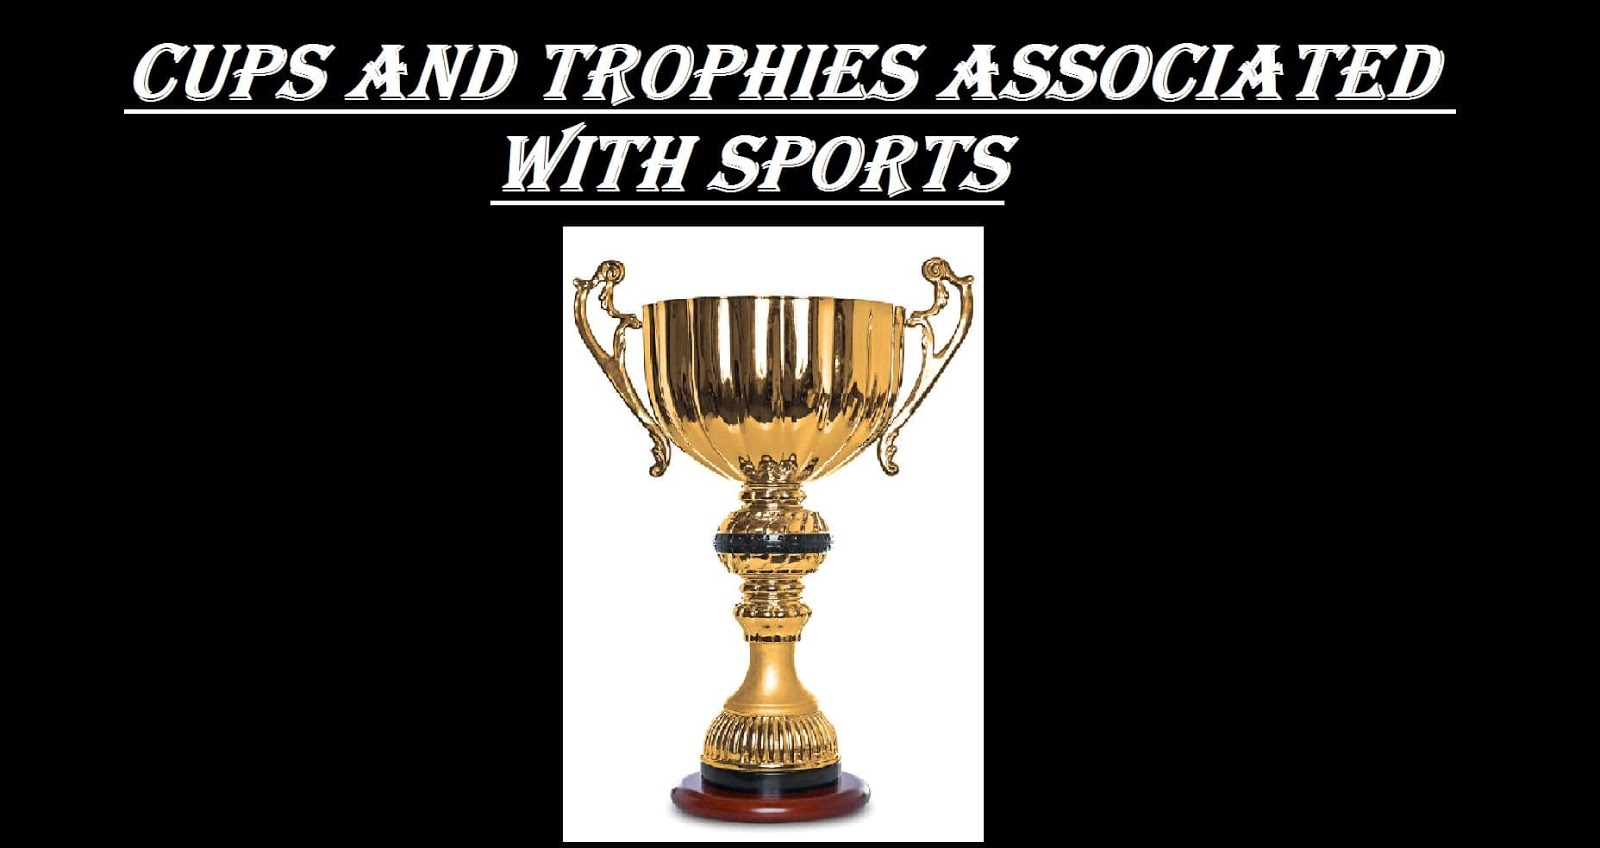 Name Of Cups And Trophies Associated With Sports